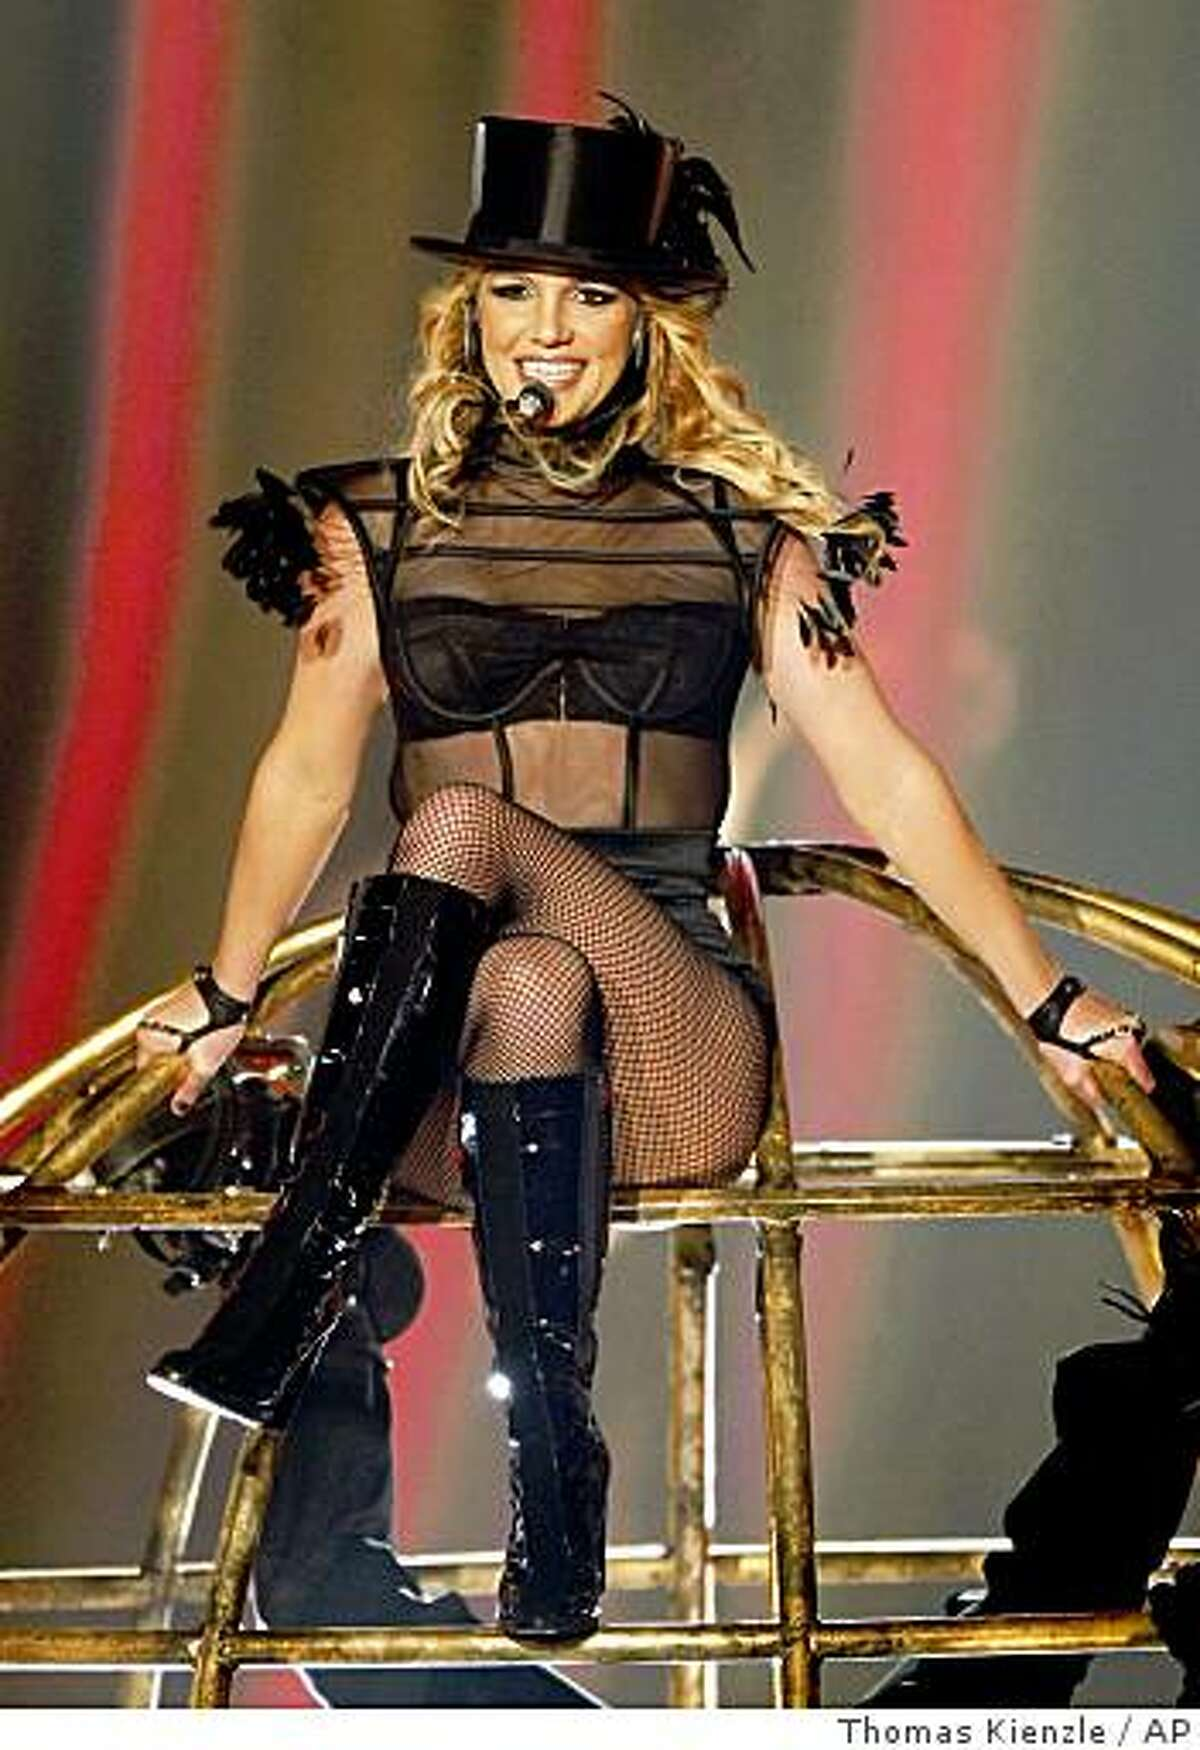 Britney Spears was the No. 1 search on Yahoo in 2008.** FILE ** In this Nov. 27, 2008 file photo, US singer Britney Spears performs during the Bambi 2008 media award ceremony in Offenburg, Germany. (AP Photo/Thomas Kienzle, file)